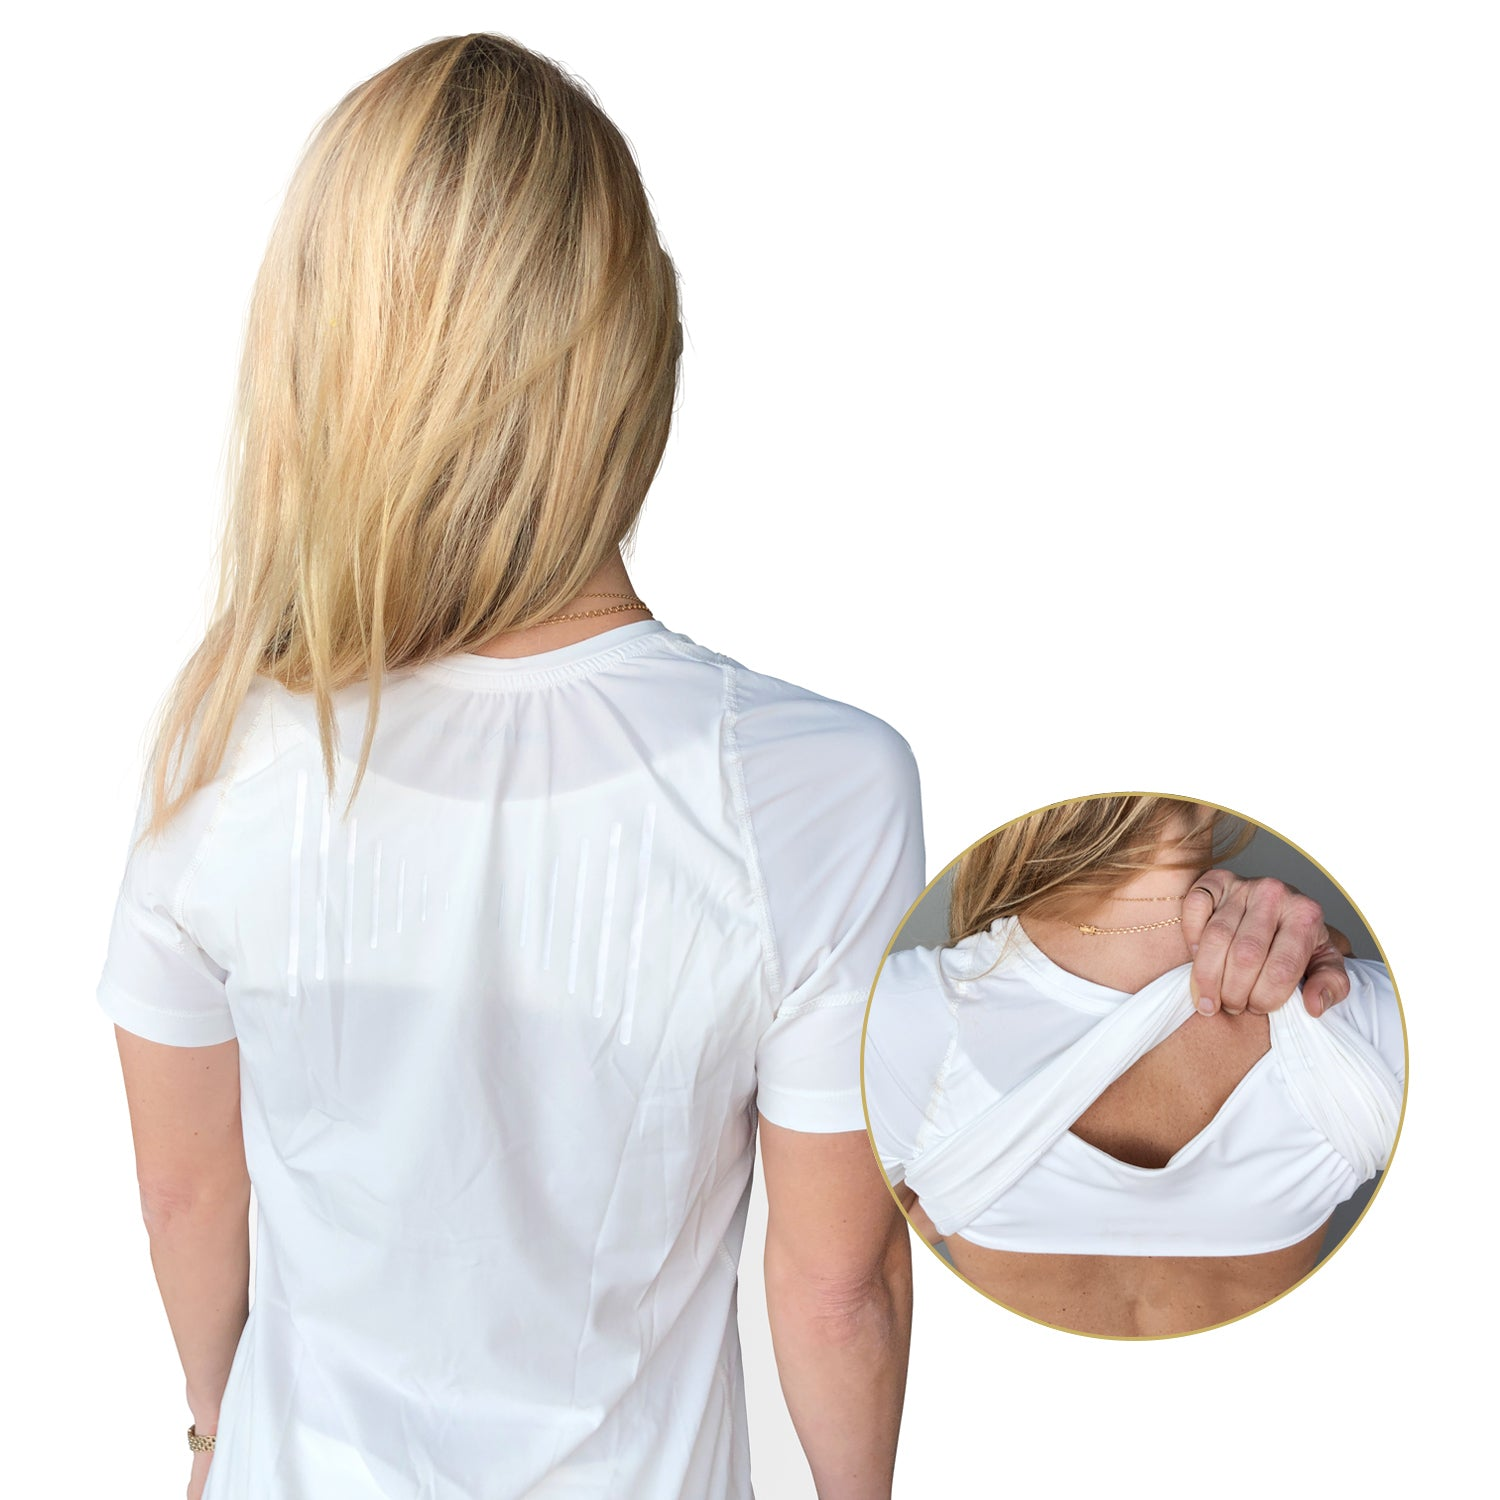 SWEDISH POSTURE REMINDER T-SHIRT